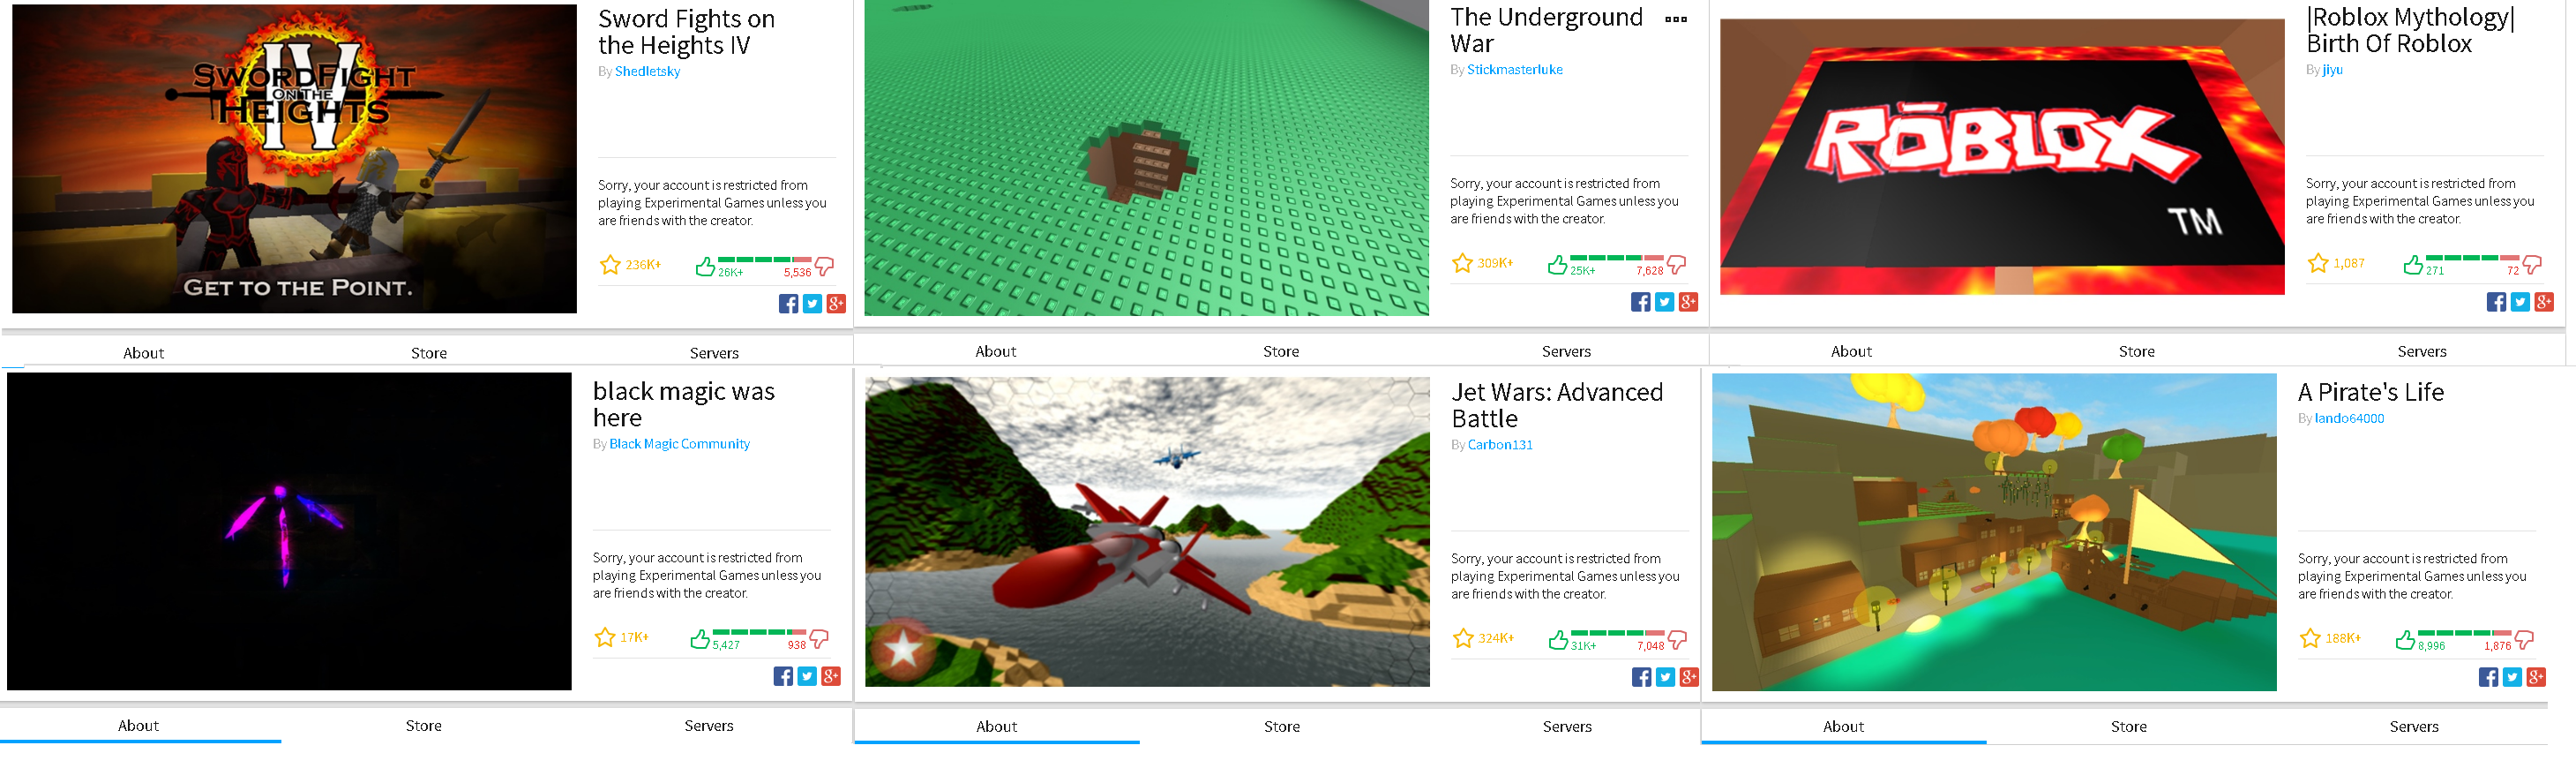 And By That Half Of Our Games Are Gone Experimental Mode Update - the underground roblox mythology sword fights on the heights iv by shedletsky war by stickmasterluke!    birth